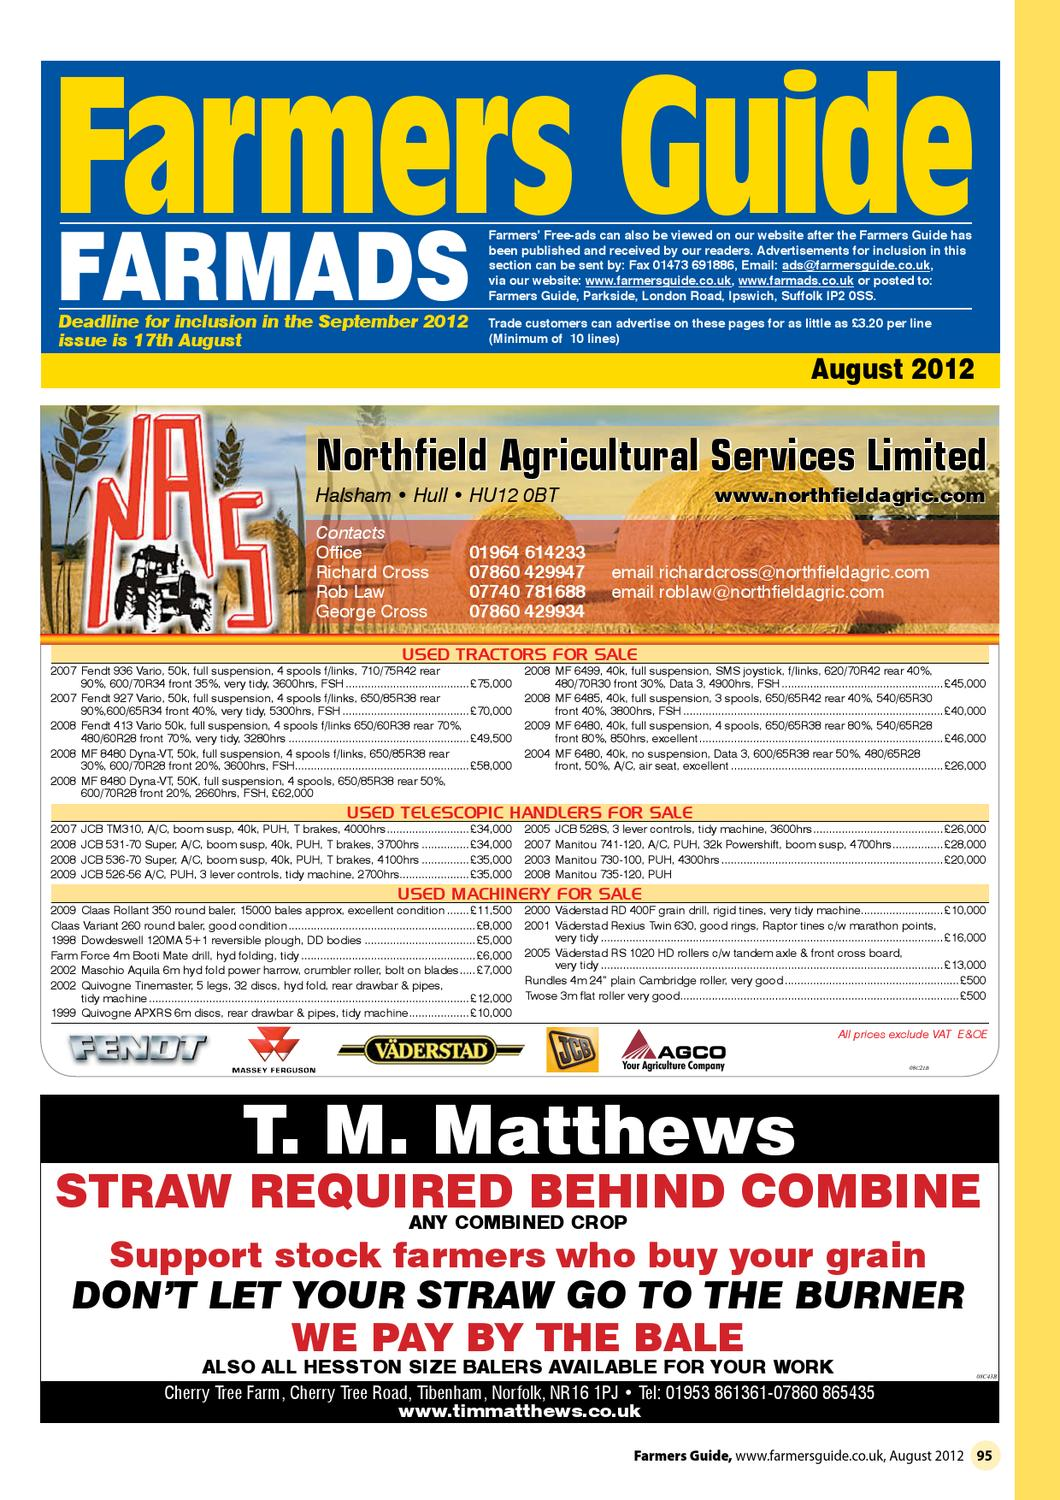 ceed38c0f8 Farmers Guide Classified section Aug 2012 by Farmers Guide - issuu